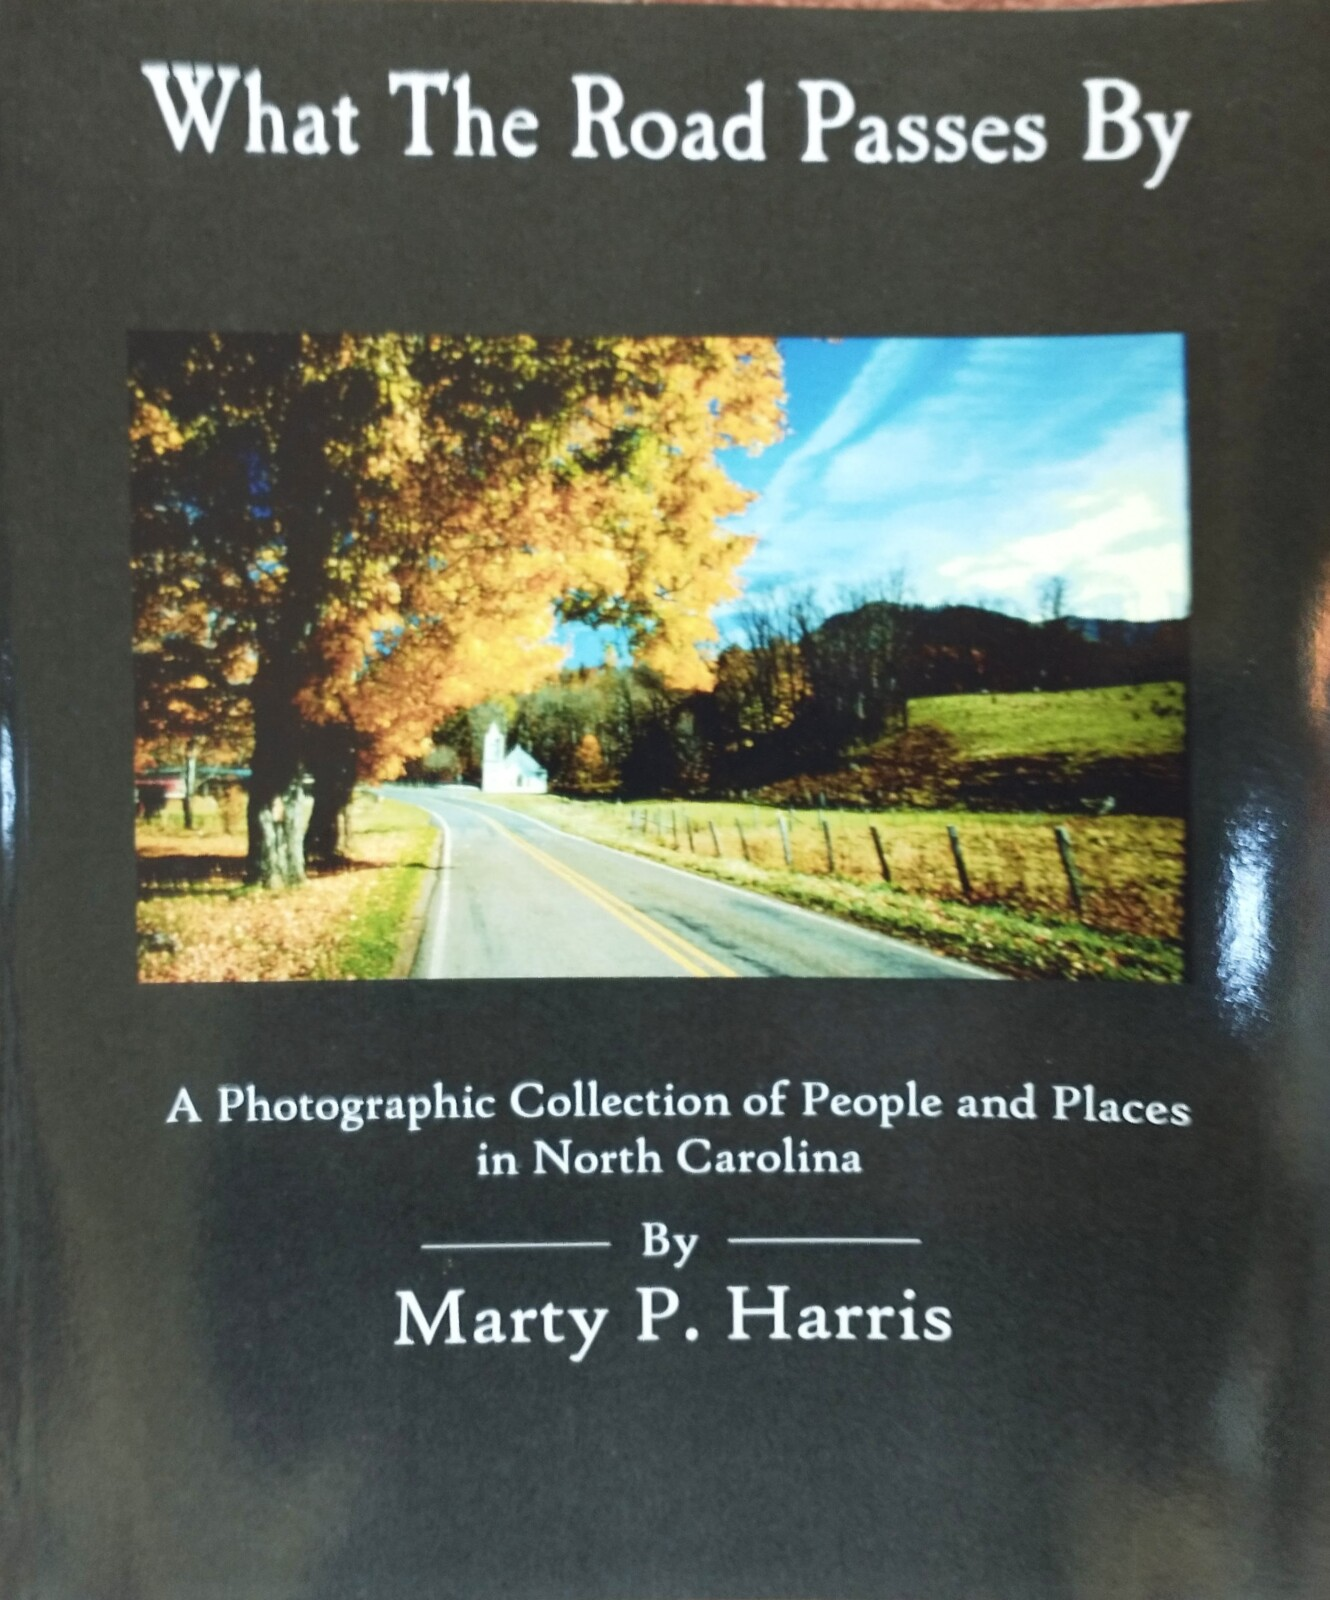 What the Road Passes By by Marty P. Harris